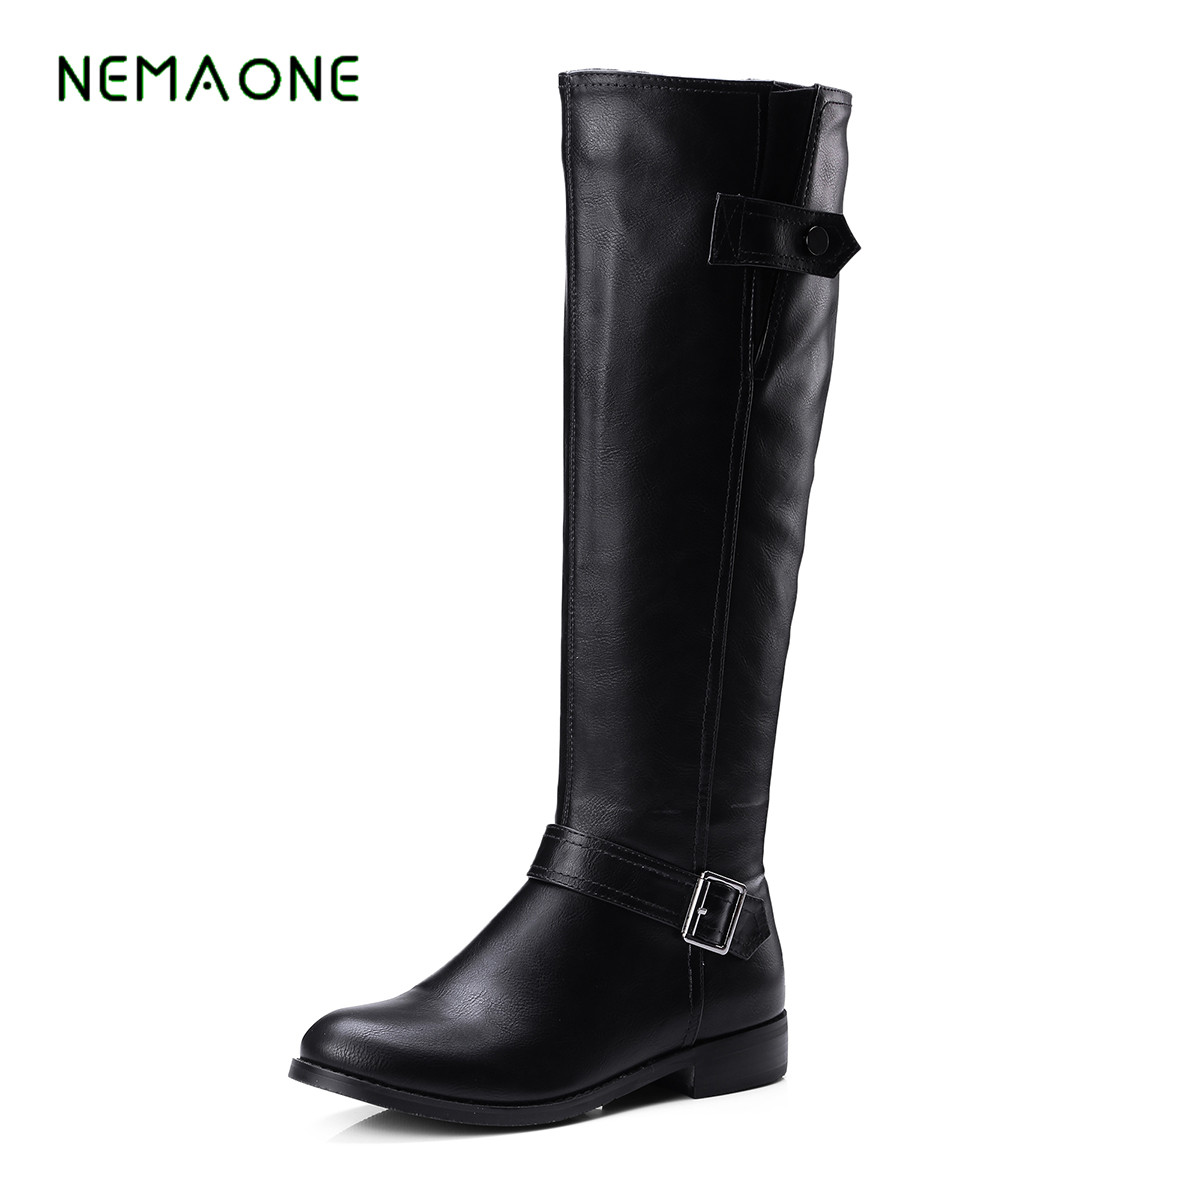 NEMAONE 2017 fashion Shoes Women Boots Shoes patchwork Flats Shoes Designer Boots Winter Over the knee Boots women s winter platform flats over the knee boots brand designer genuine suede leather patchwork elastic long boots shoes women